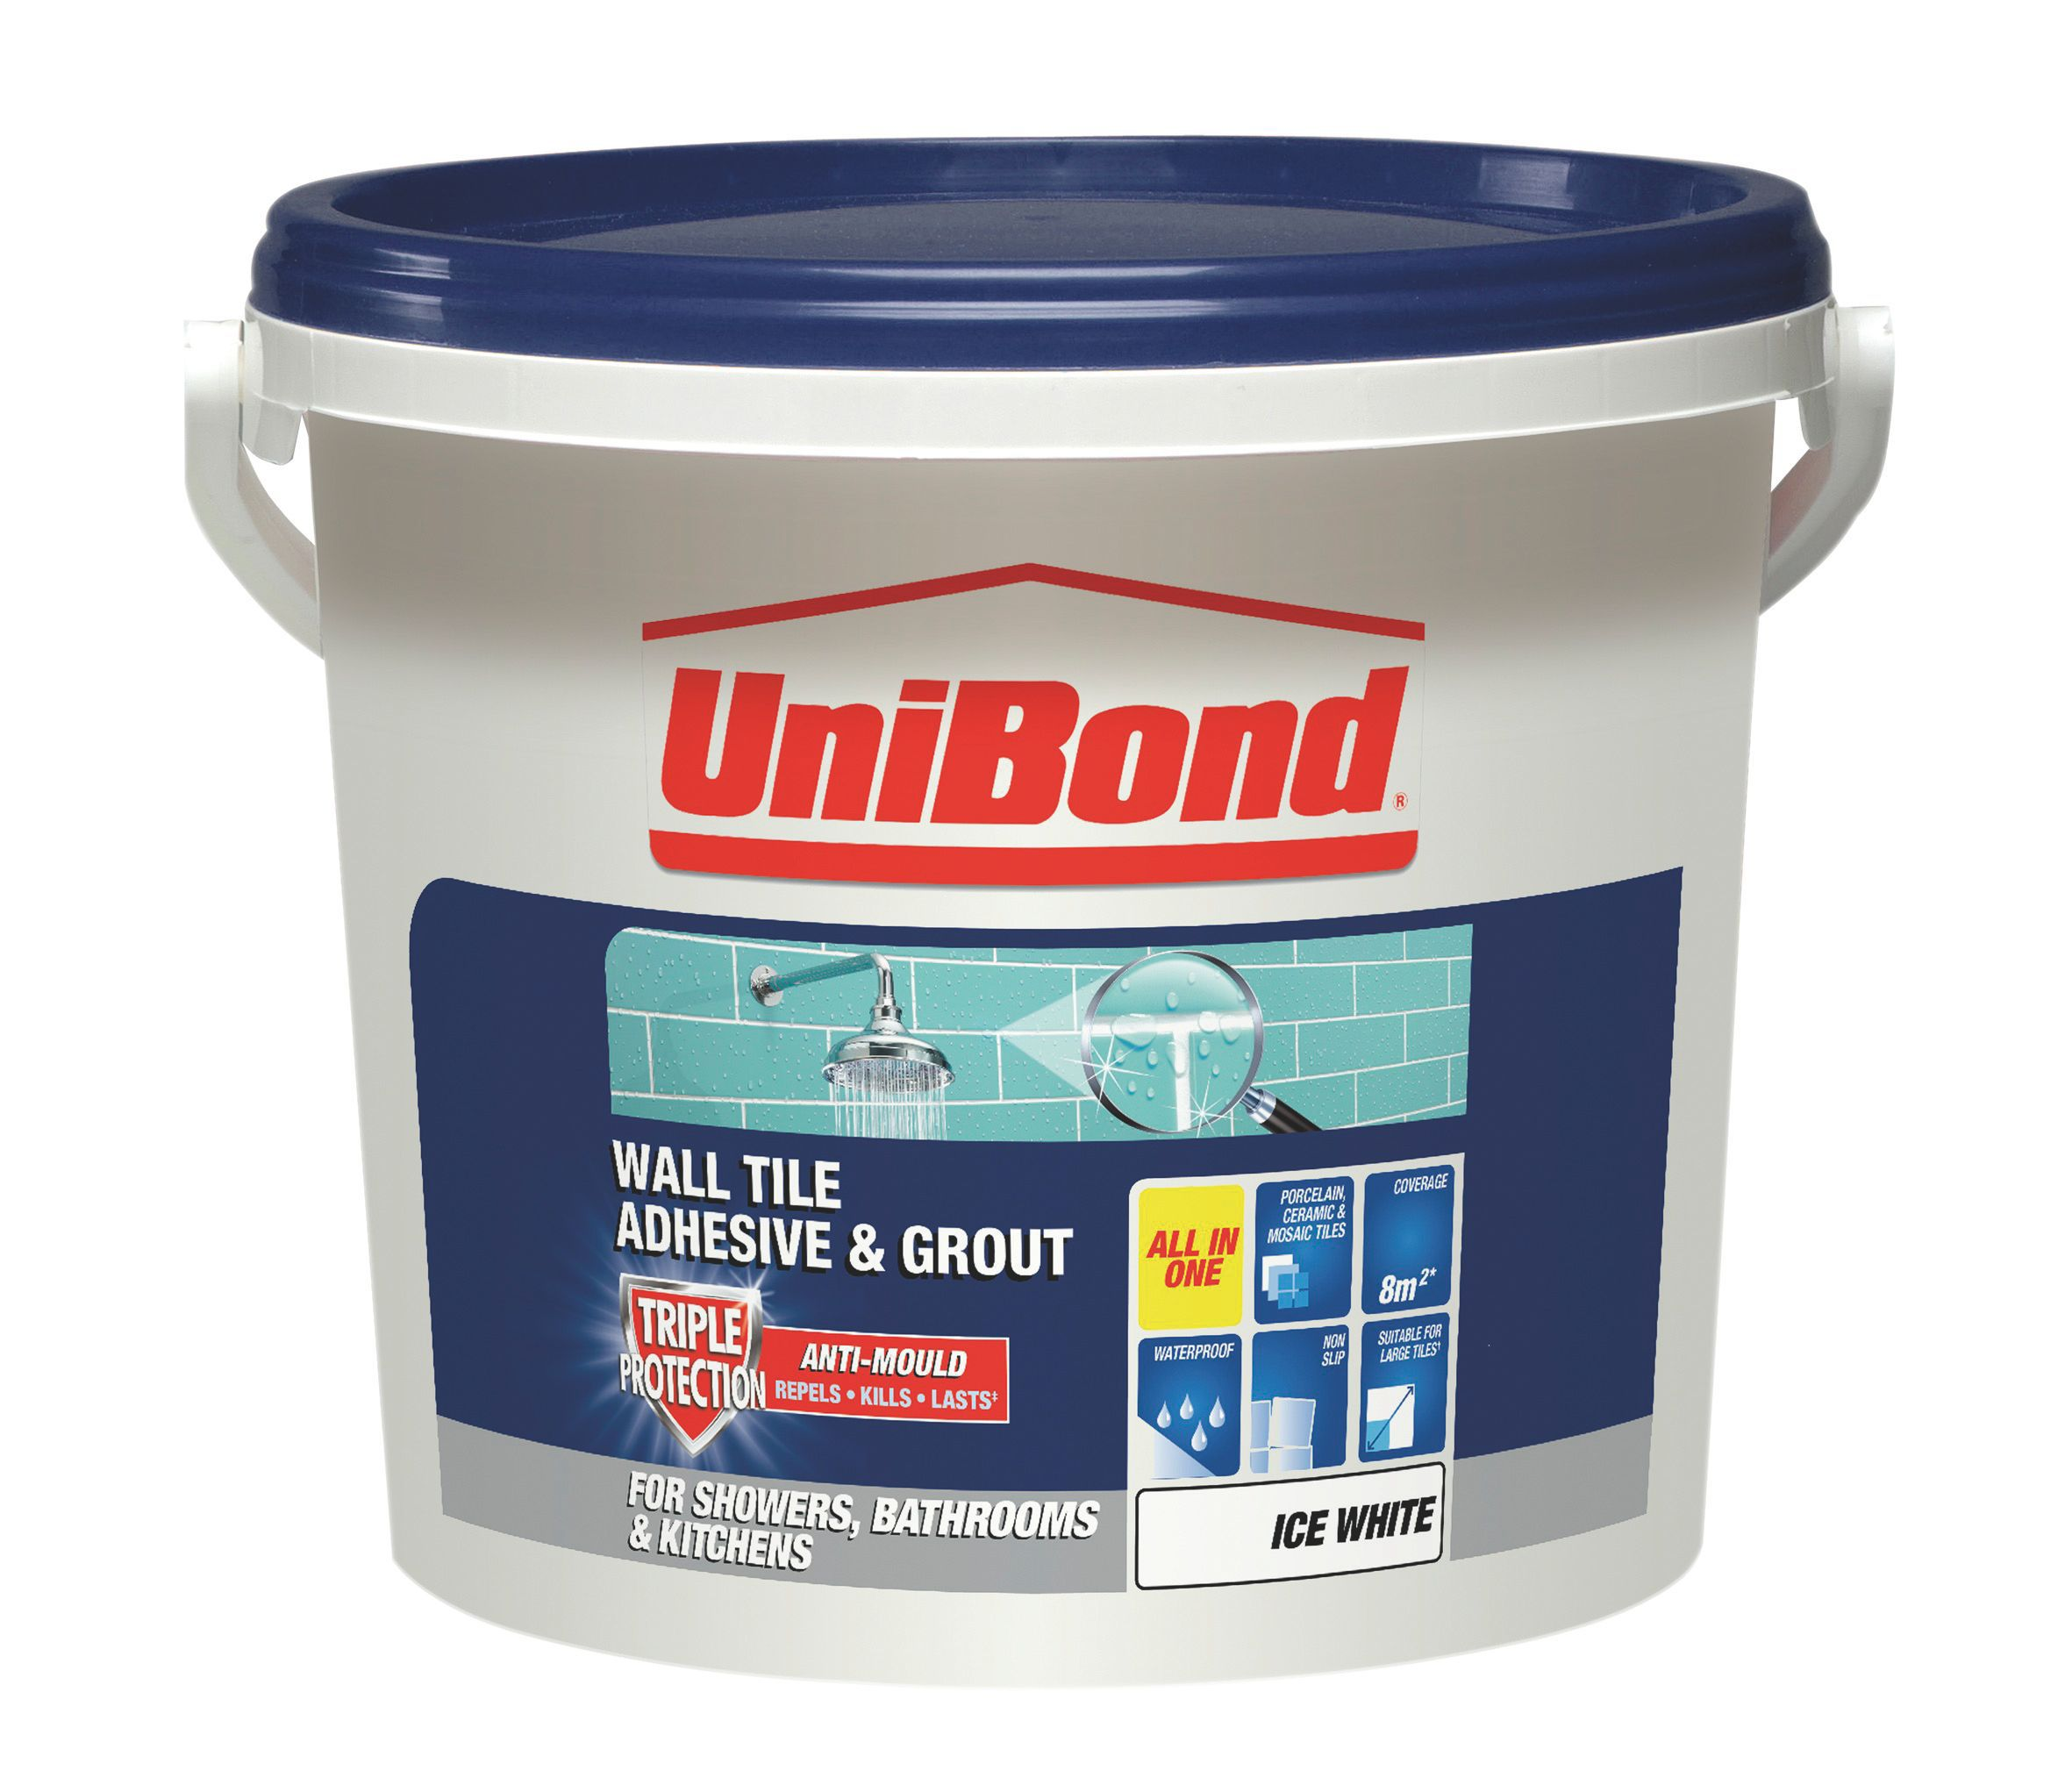 Unibond ready to use wall tile adhesive grout ice white 128kg unibond ready to use wall tile adhesive grout ice white 128kg departments diy at bq dailygadgetfo Gallery